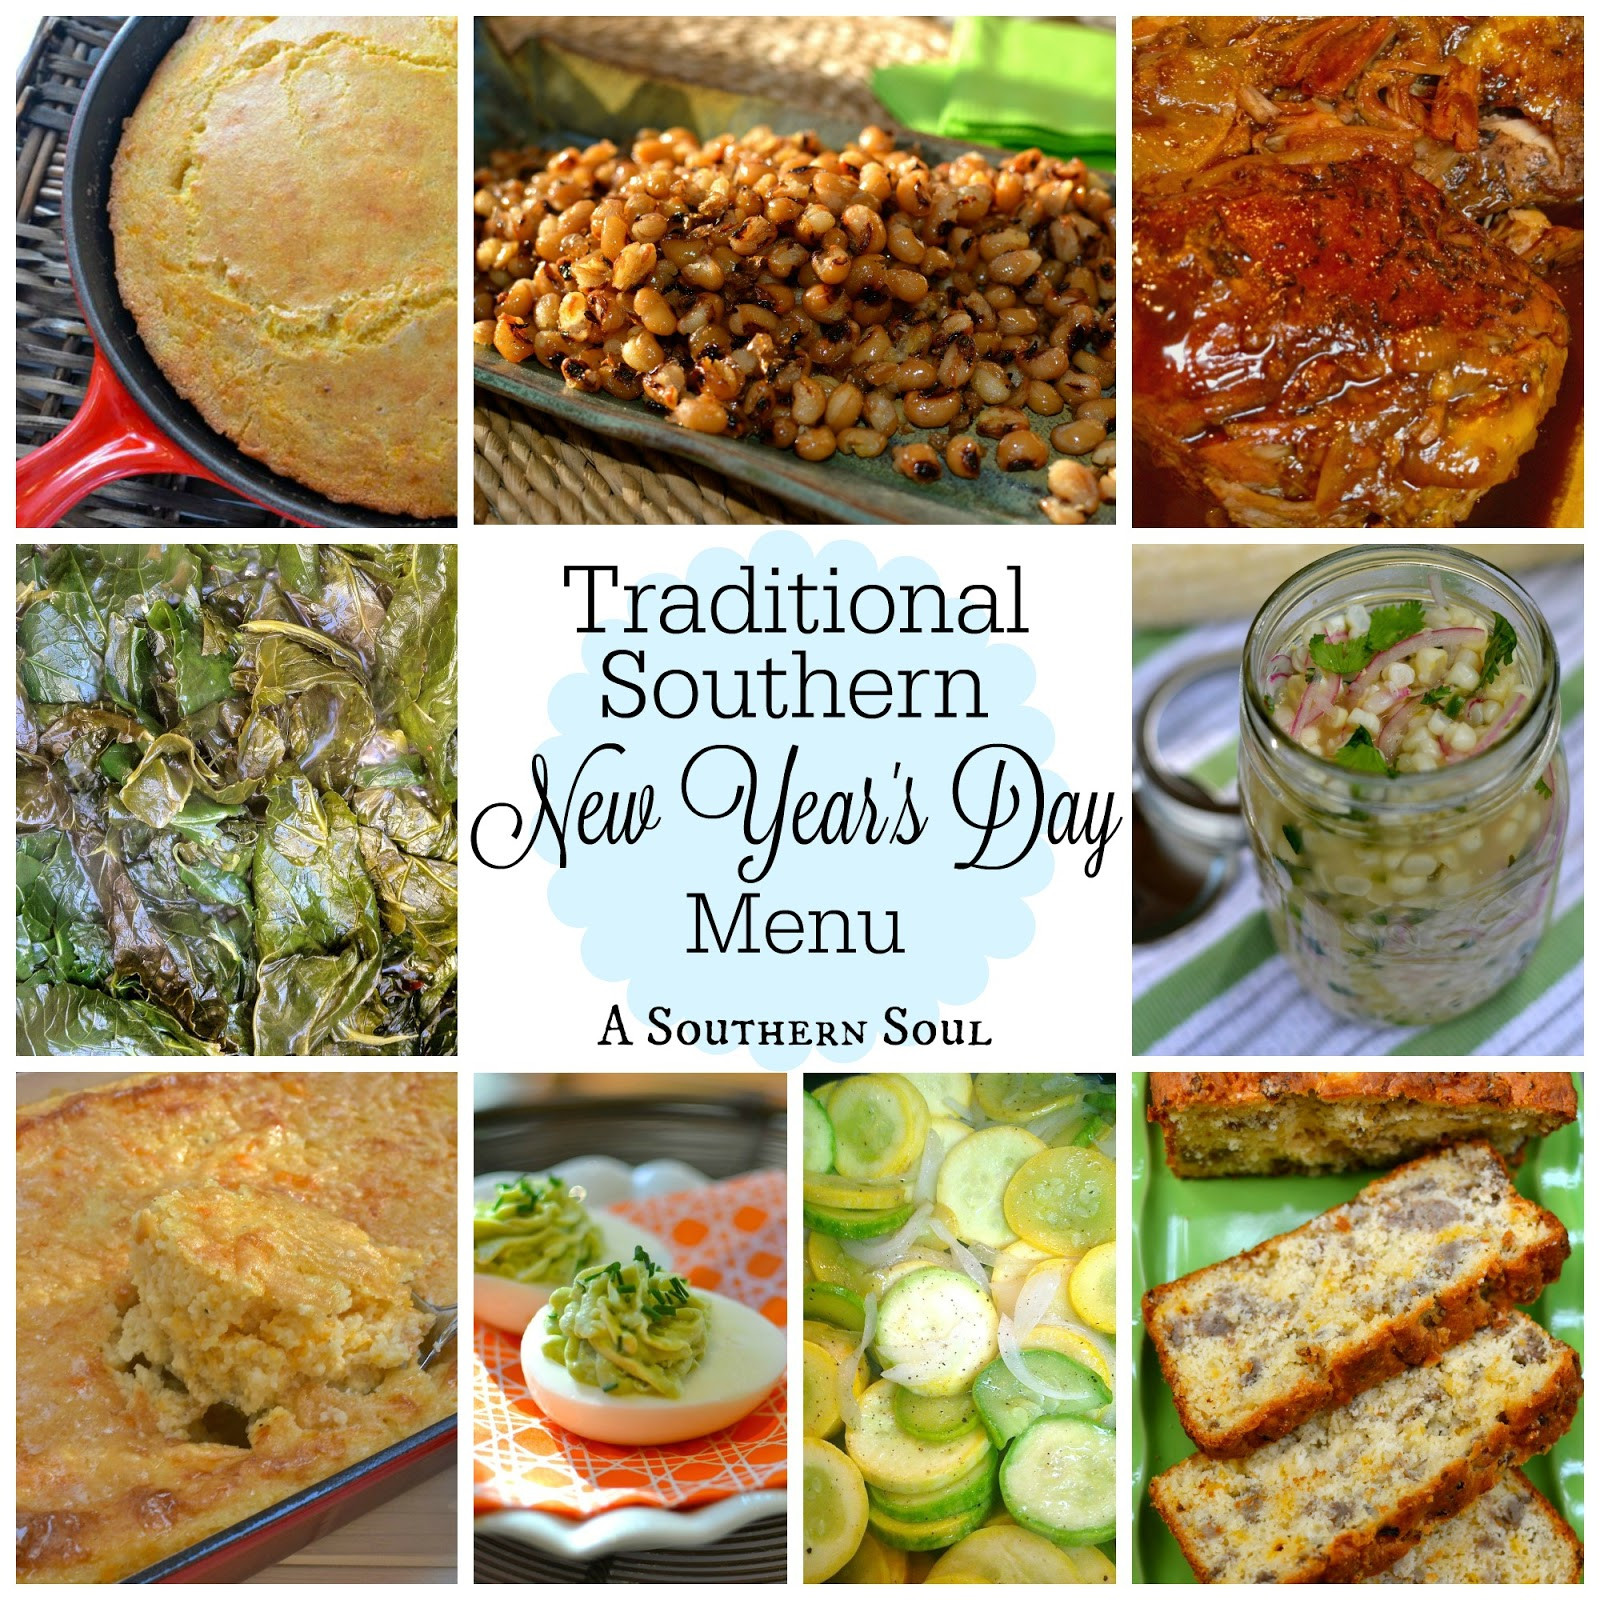 New Year Day Dinner Traditions  Traditional Southern New Year's Day Menu